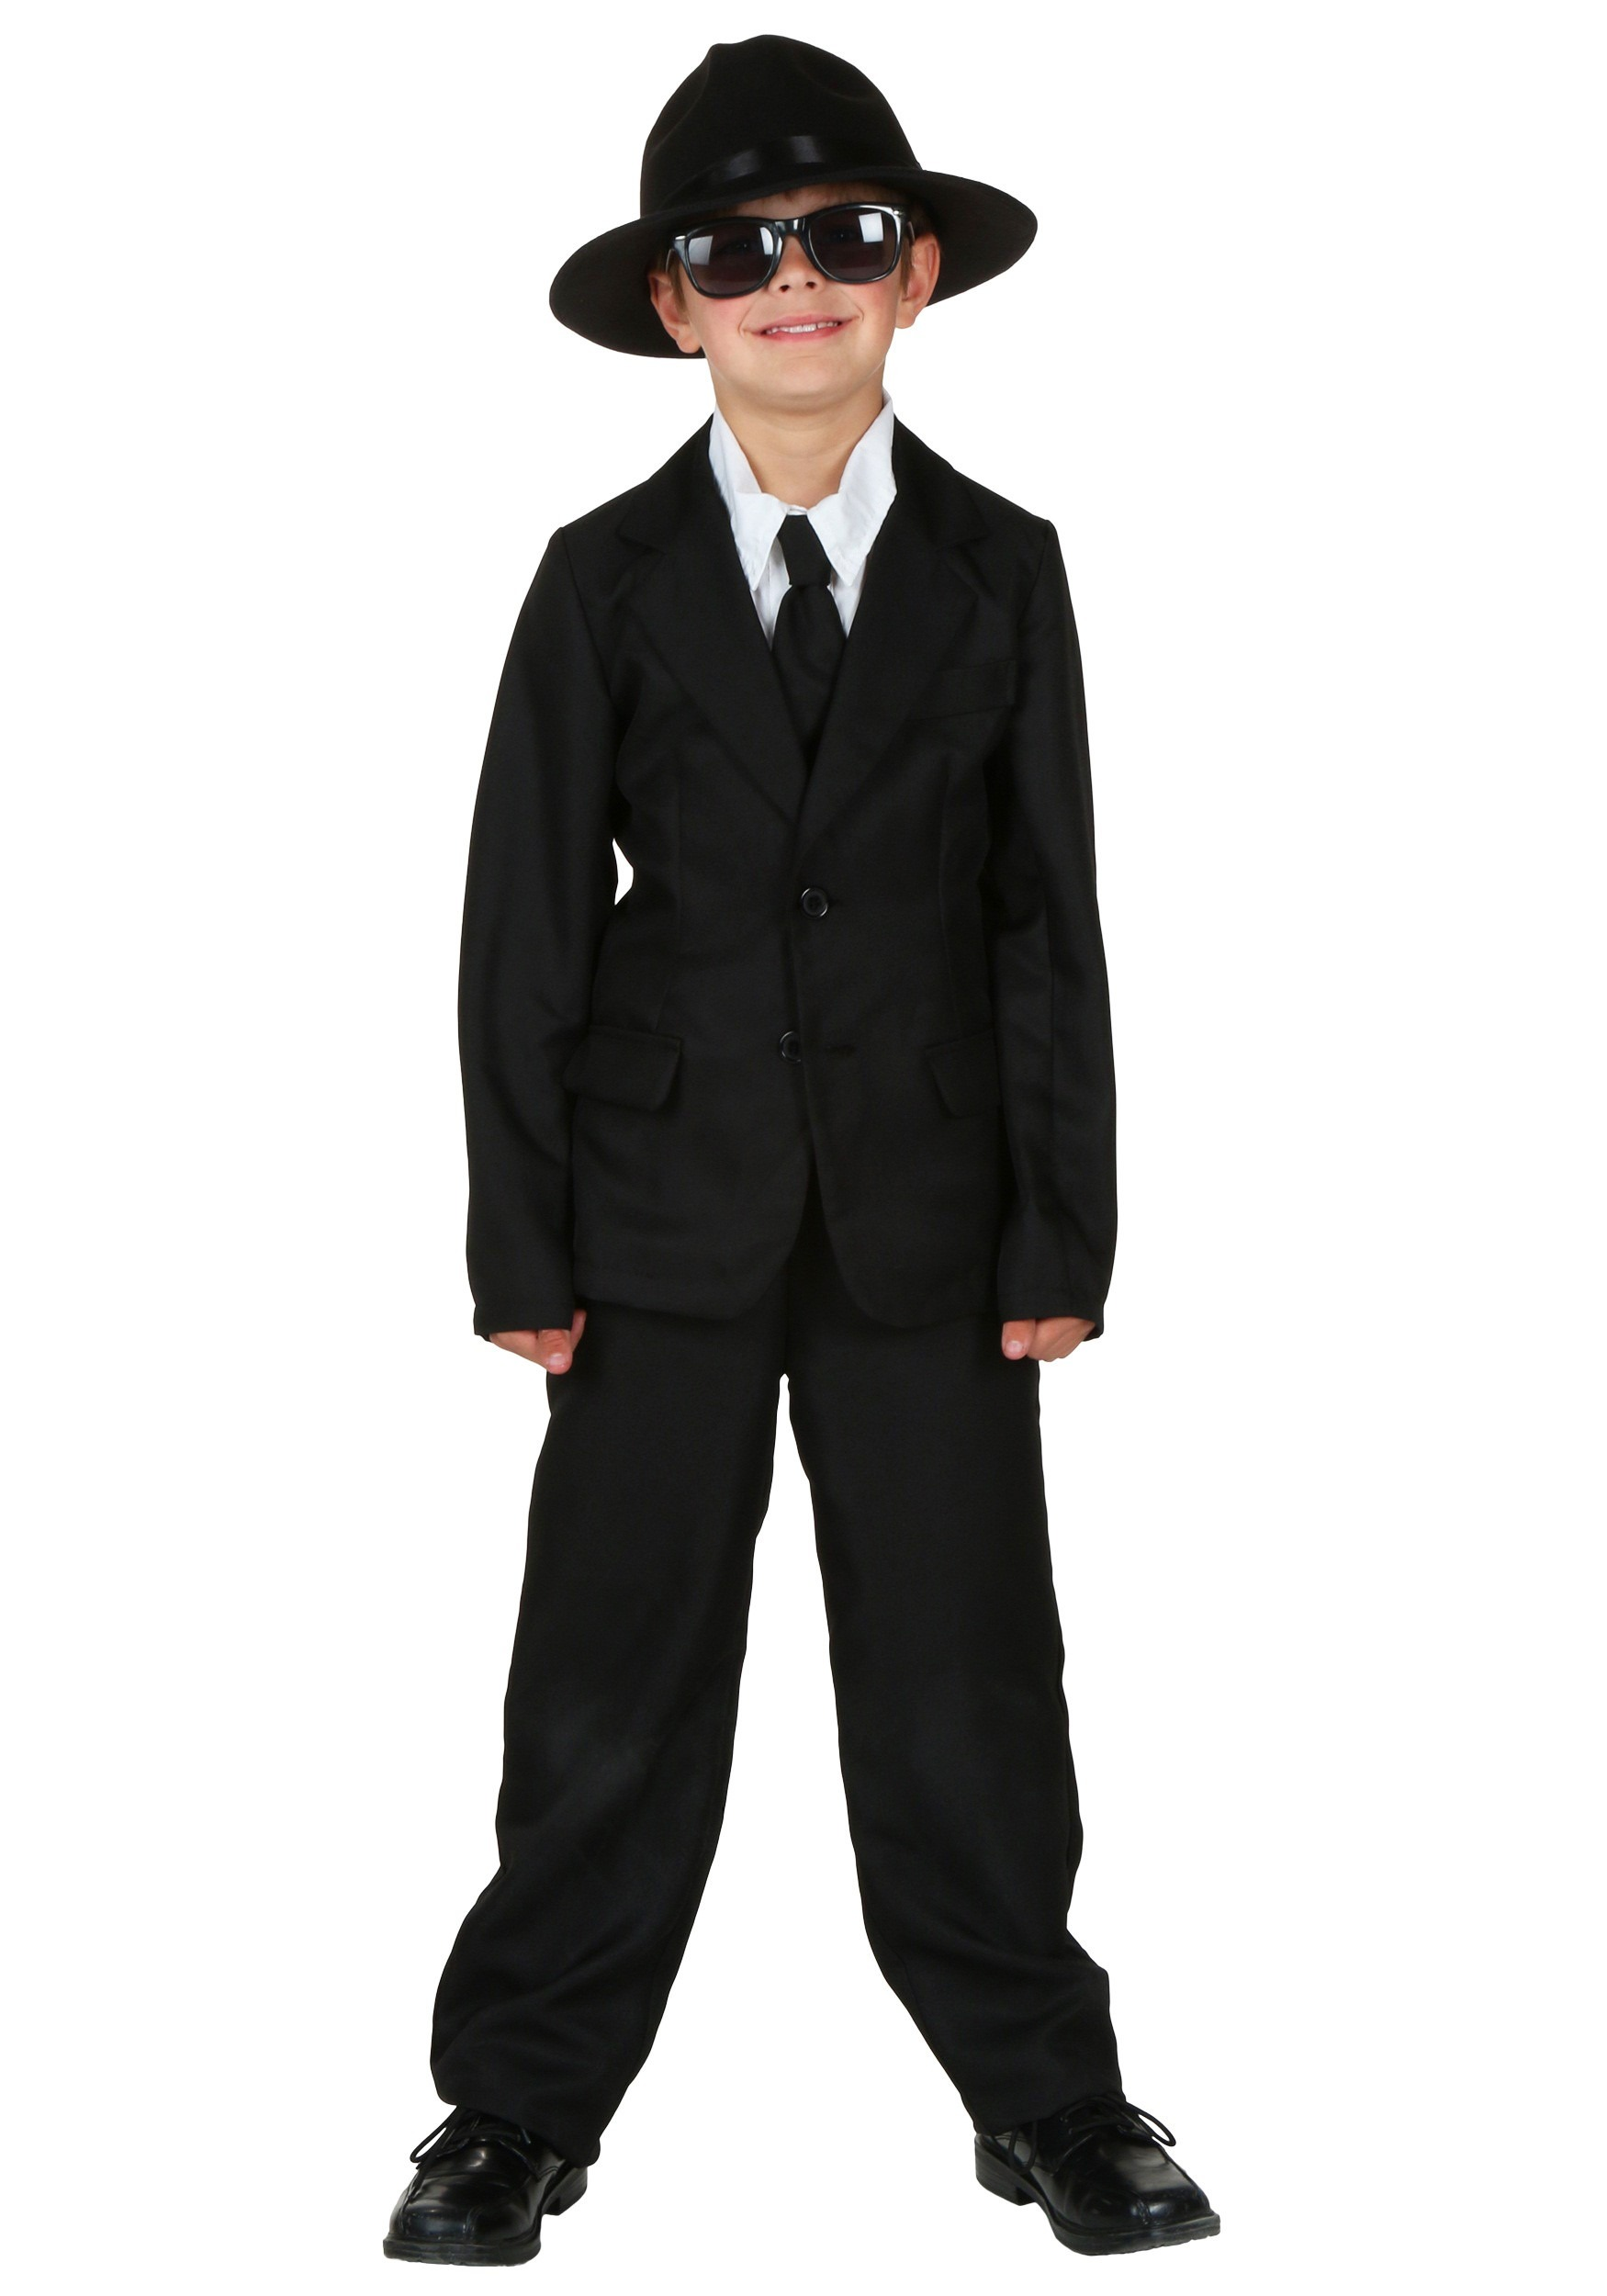 Toddler Child Hat Size Black Suit For Kids Costume